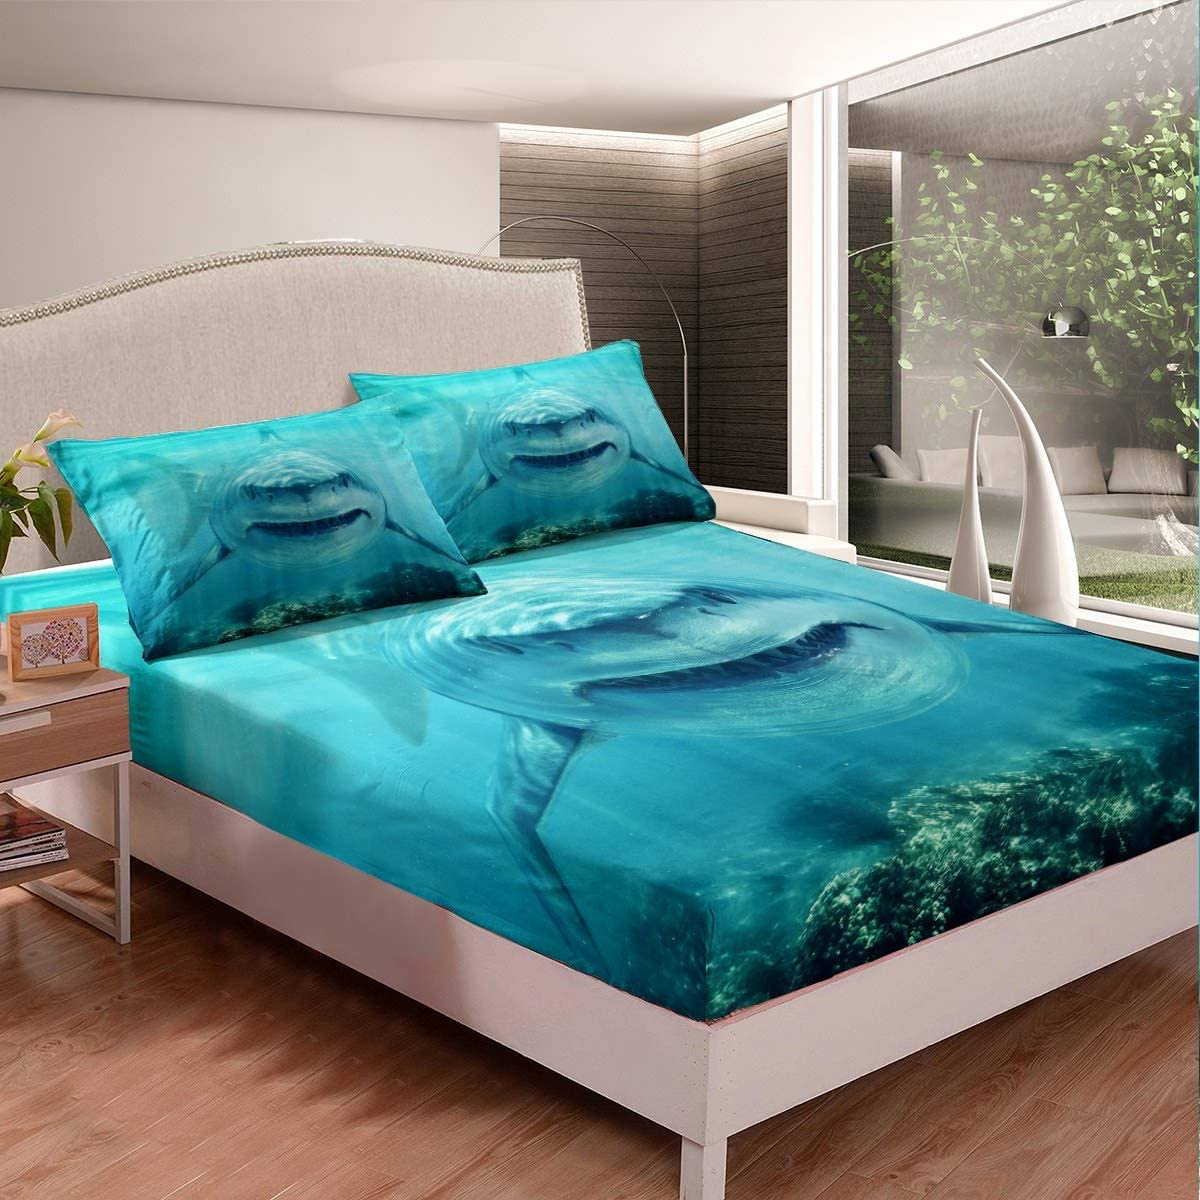 Feelyou 3D Shark Bedding Set for Kids Boys Teens Marine Life Ocean Shark Bed Sheet Set Sea Underwater Fitted Sheet Aquatic Animal Bed Cover,Room Decor 3Pcs Sheets Full Size